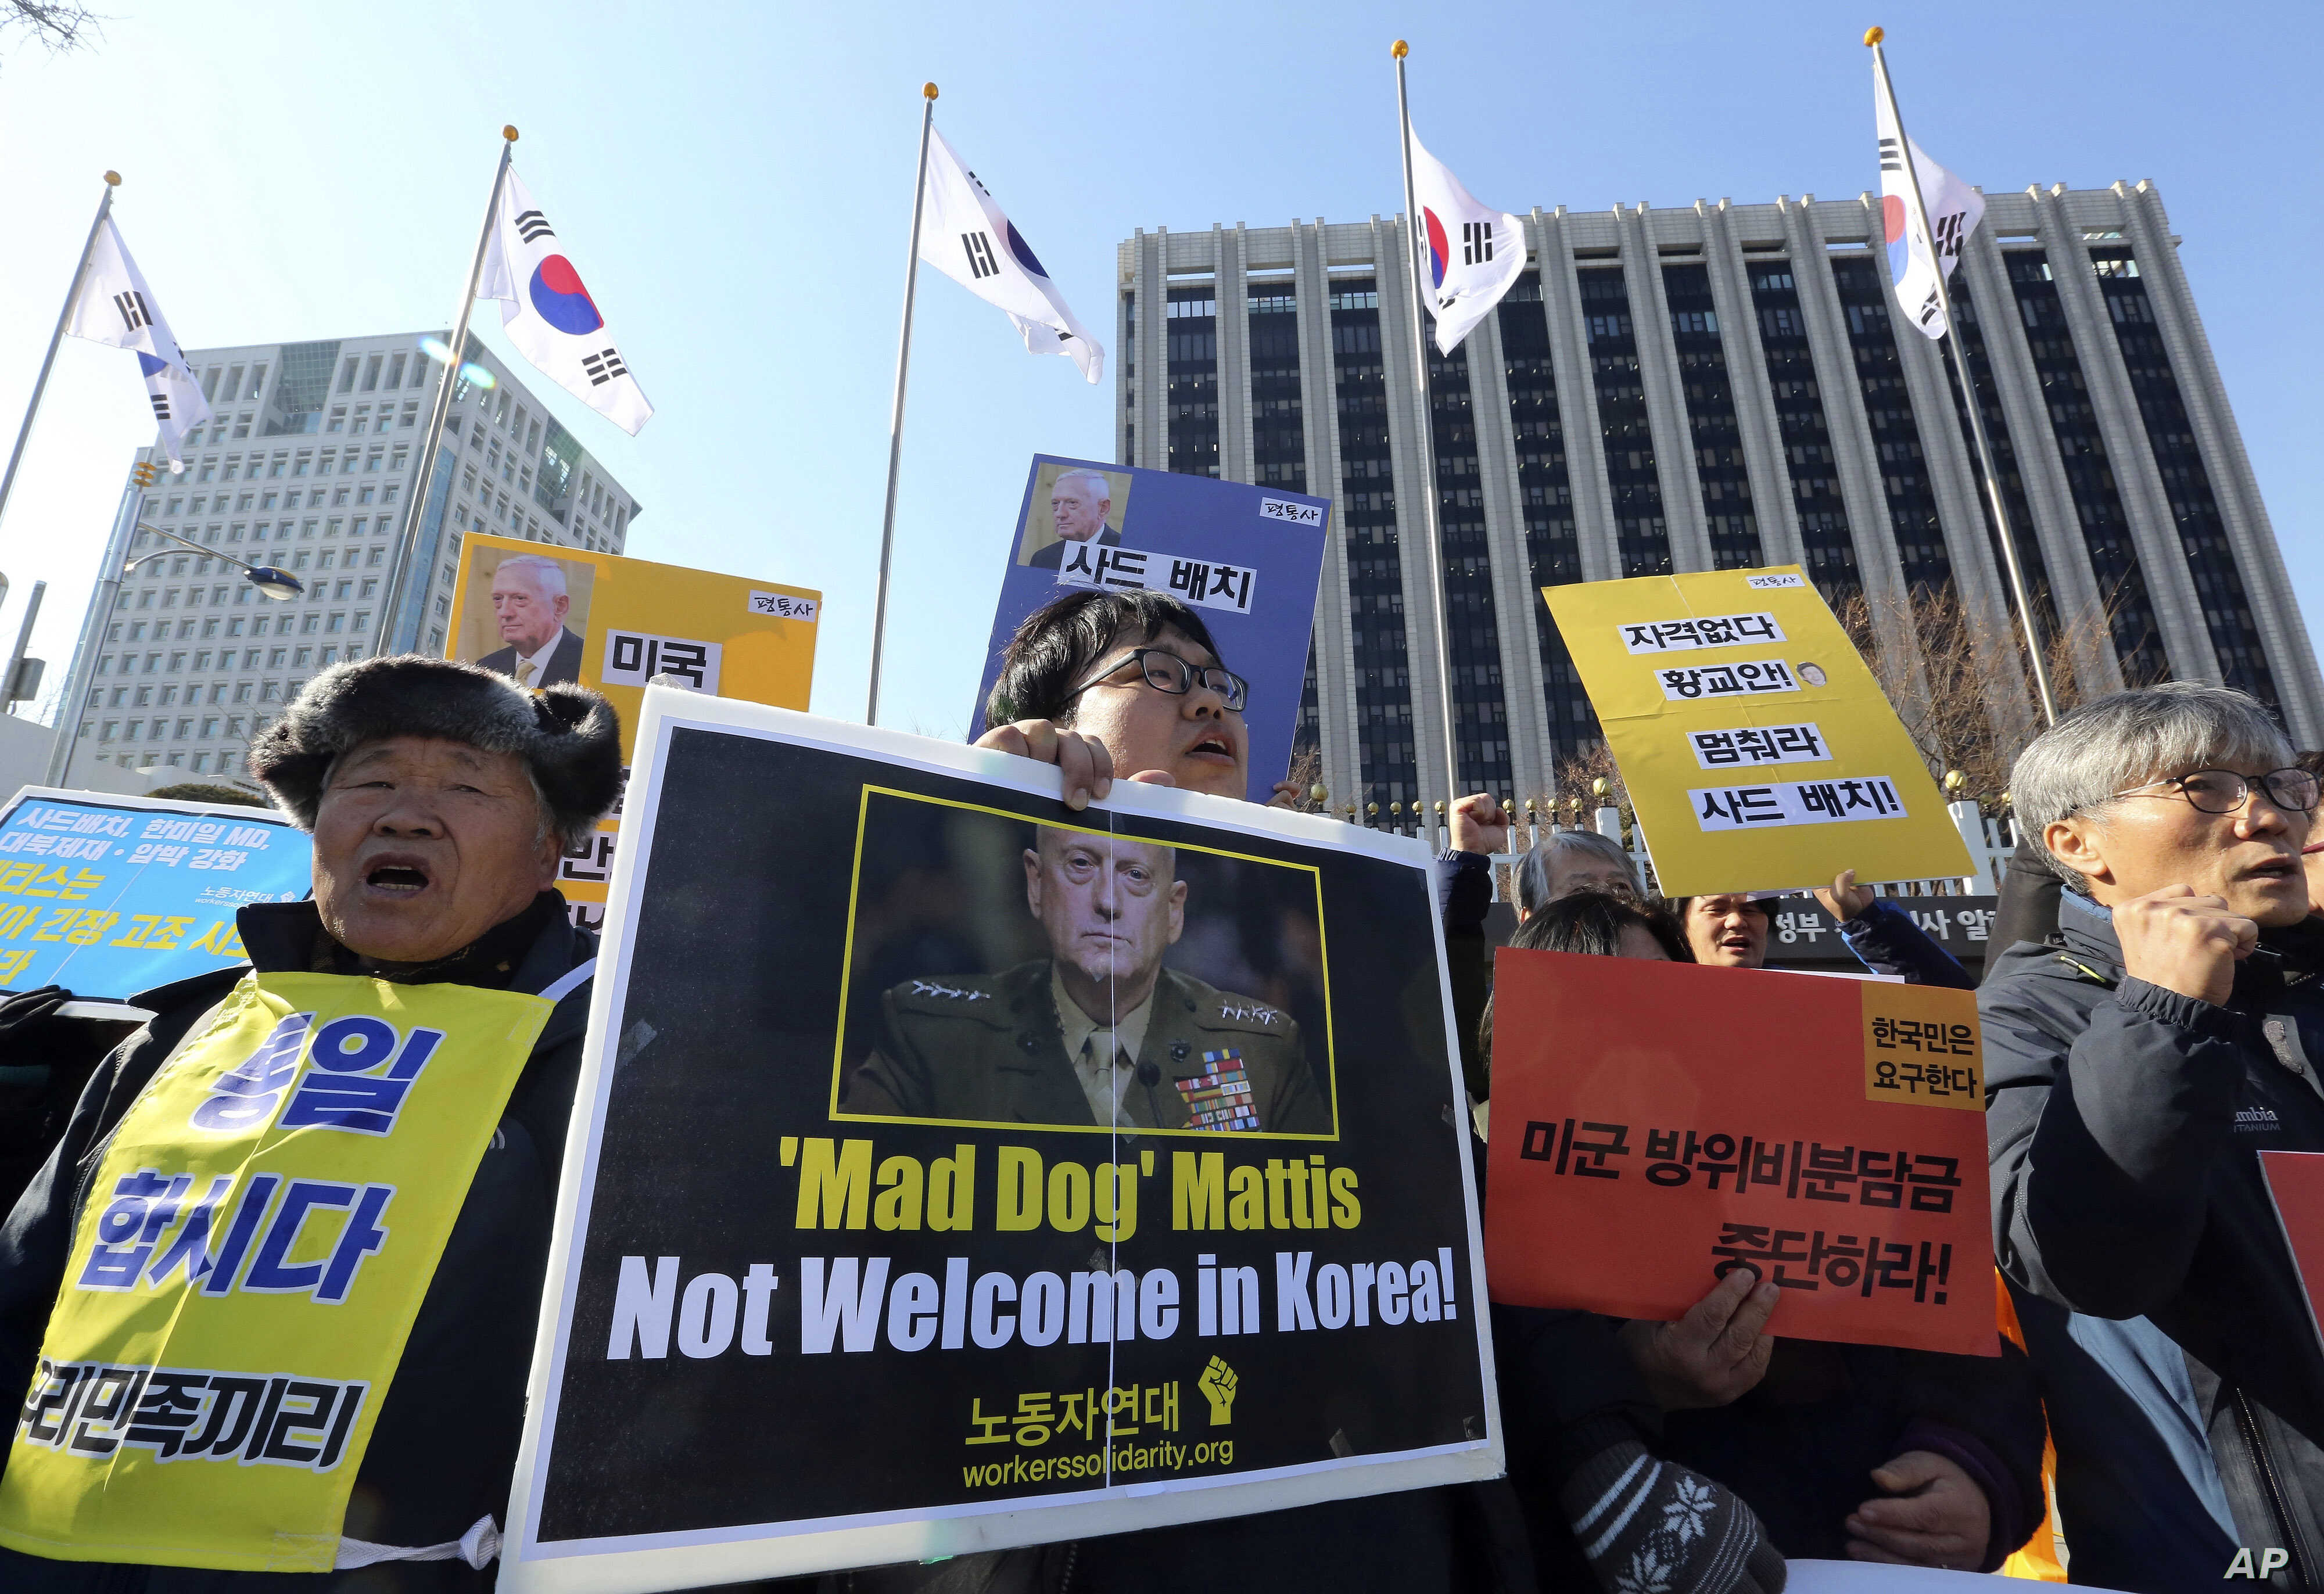 South Korean protesters stage a rally against U.S. Defense Secretary Jim Mattis's visit, in front of the government complex in Seoul, South Korea, Feb. 2, 2017.